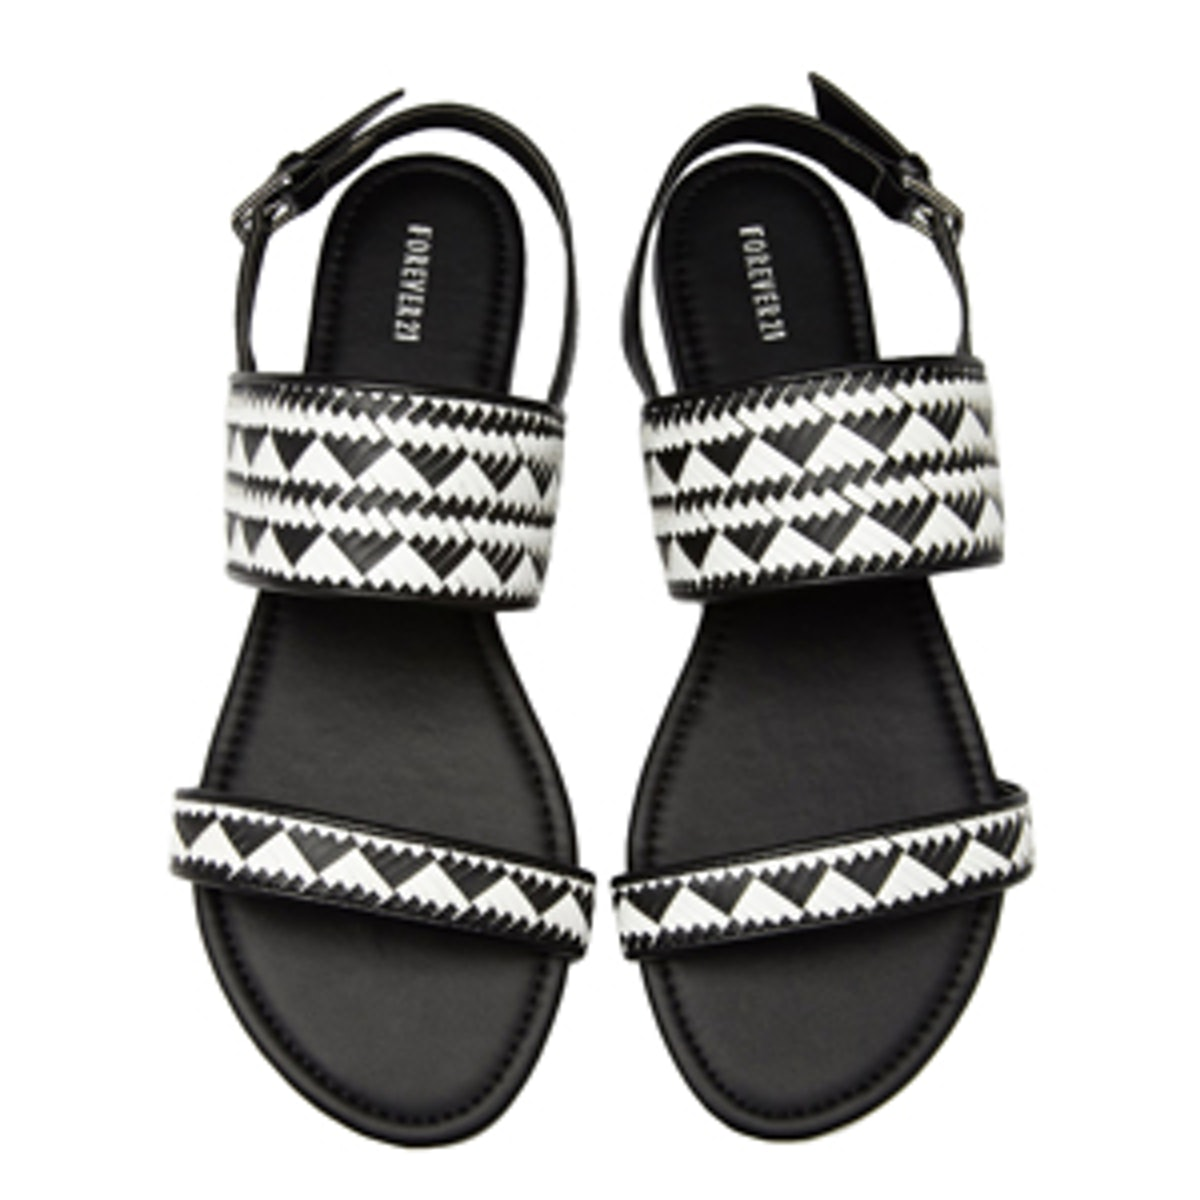 Faux Leather Woven Sandals